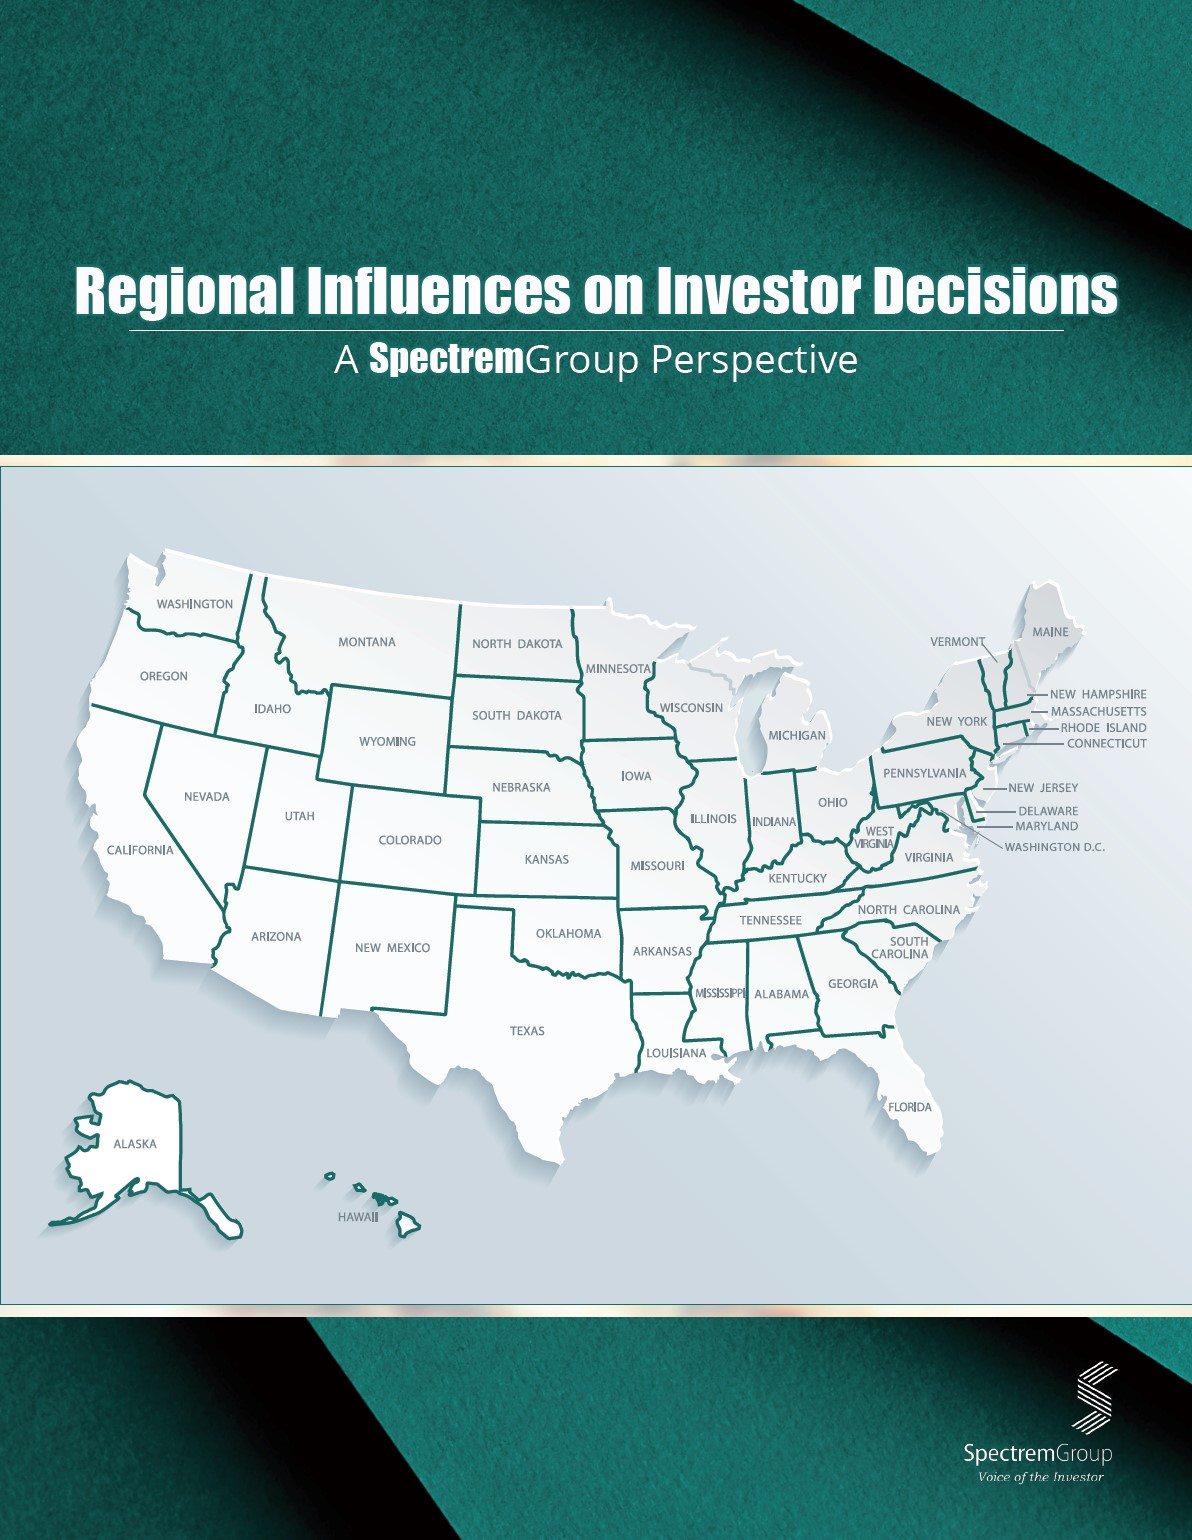 Regional Influences on Investor Decisions - Complete Bundle